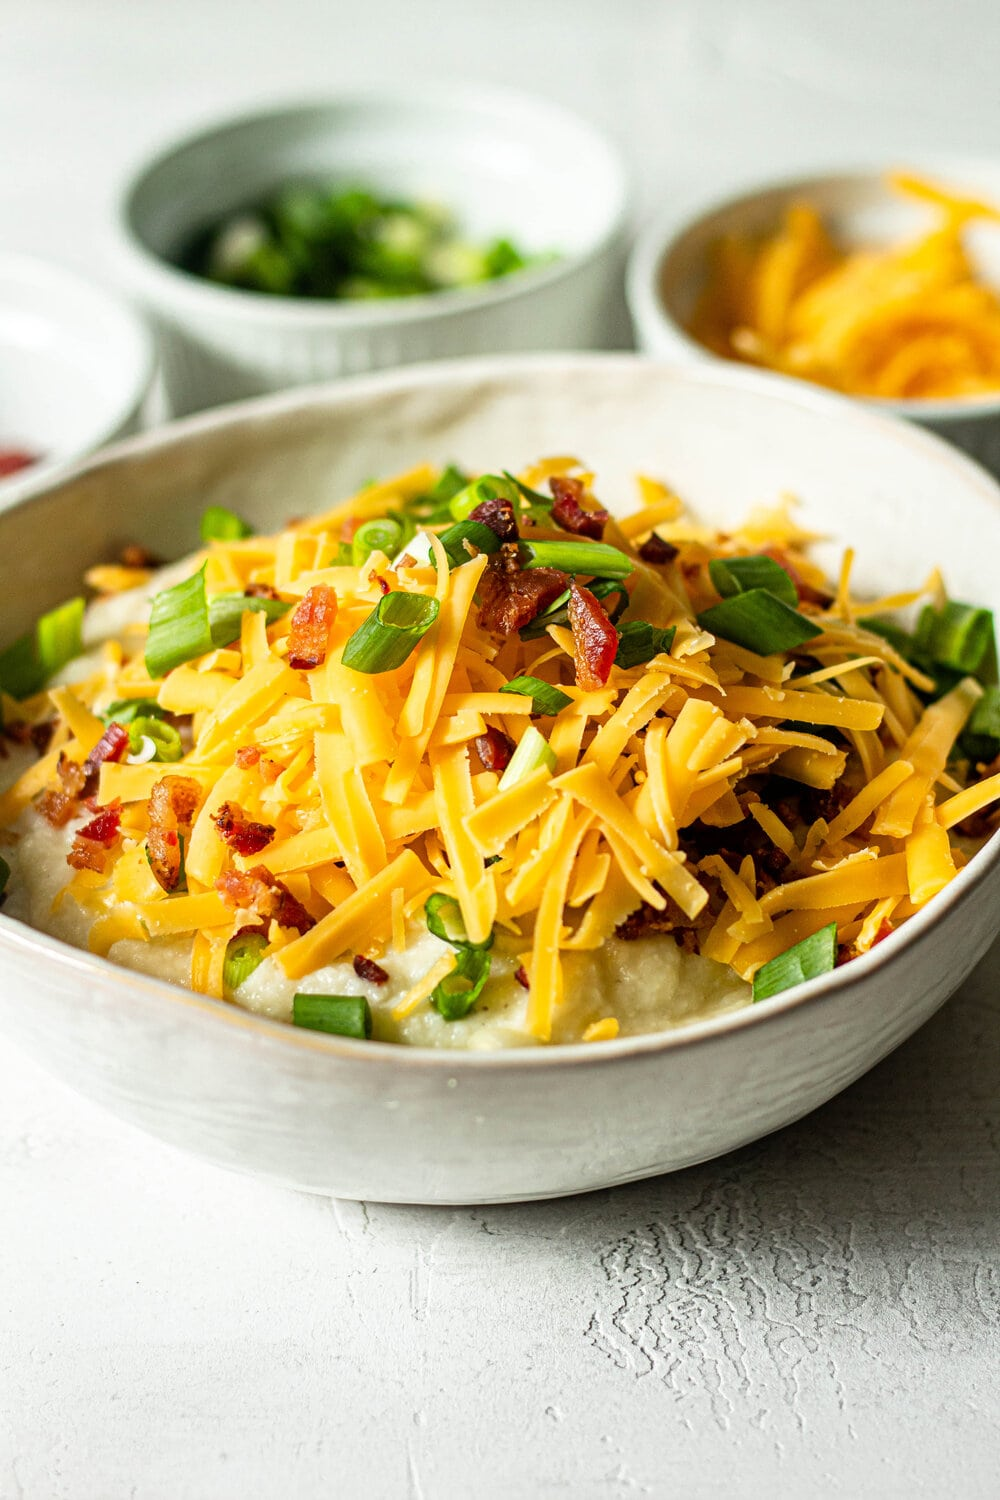 Loaded Mashed Cauliflower topped with cheese, green onions, and bacon